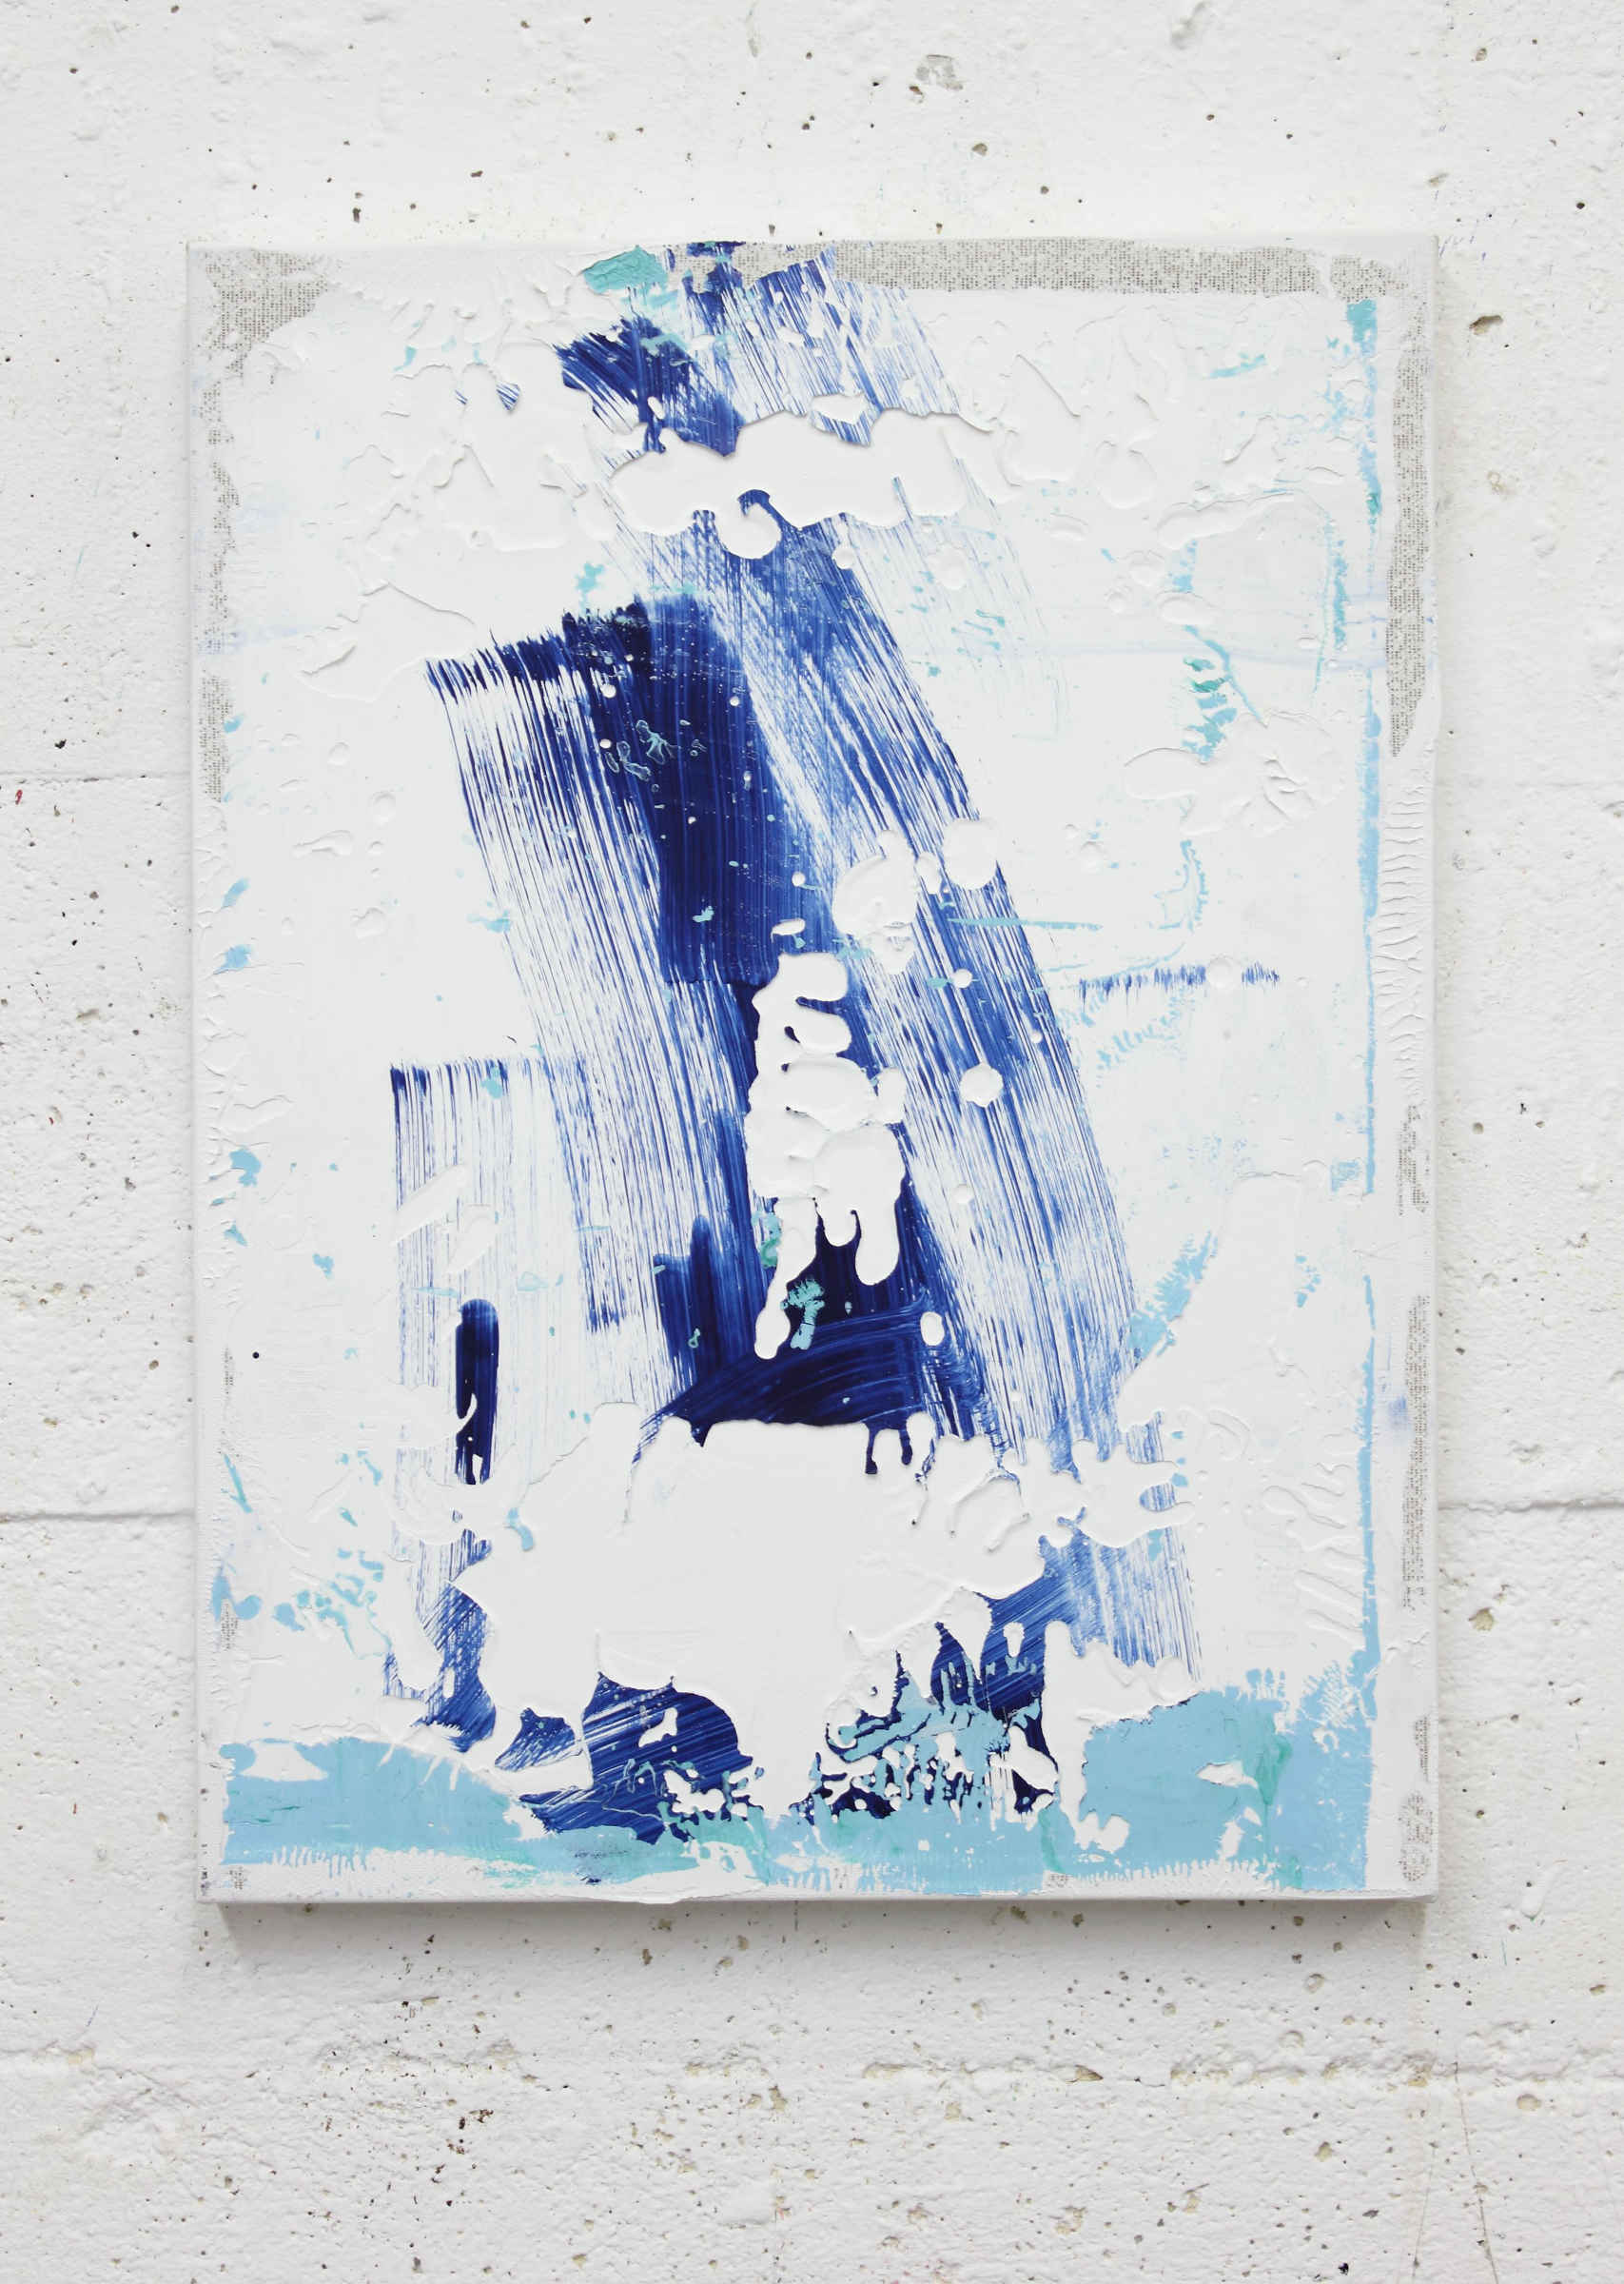 34_untitled, 2015, acrylic paint and monothype process on primer on cotton, cm 40x30